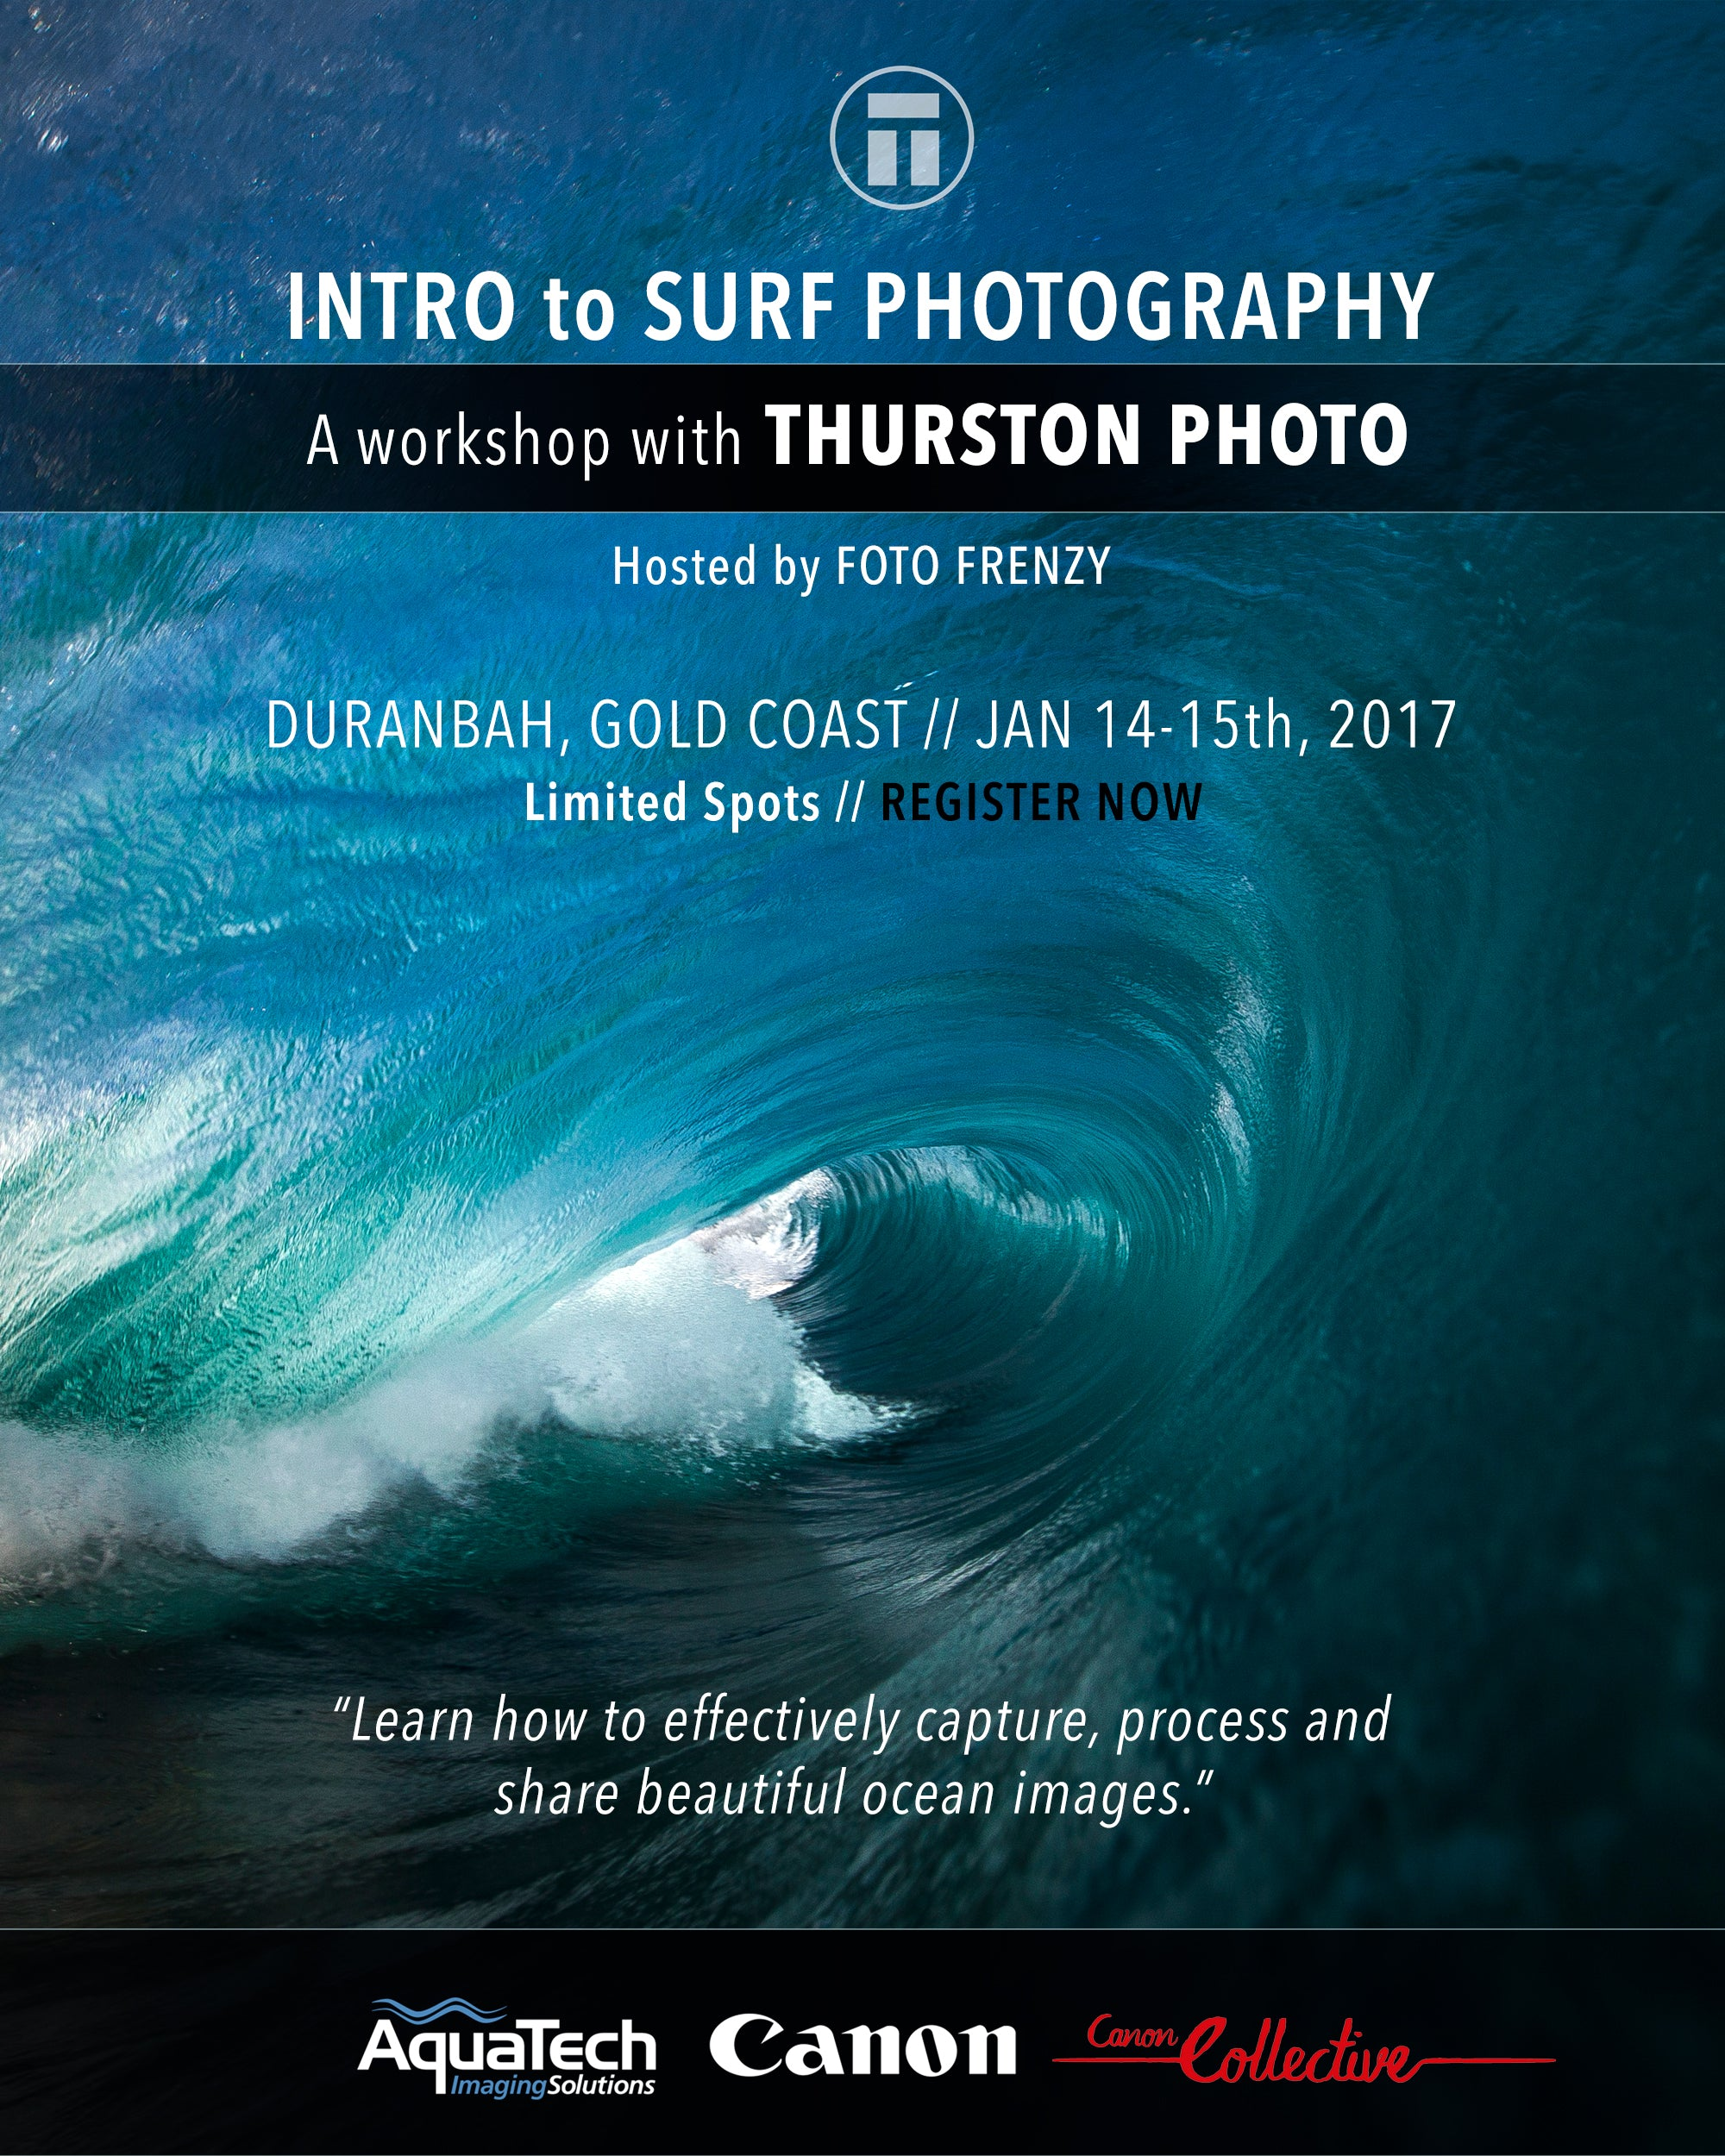 Intro to Shooting Waves with Thurston Photo